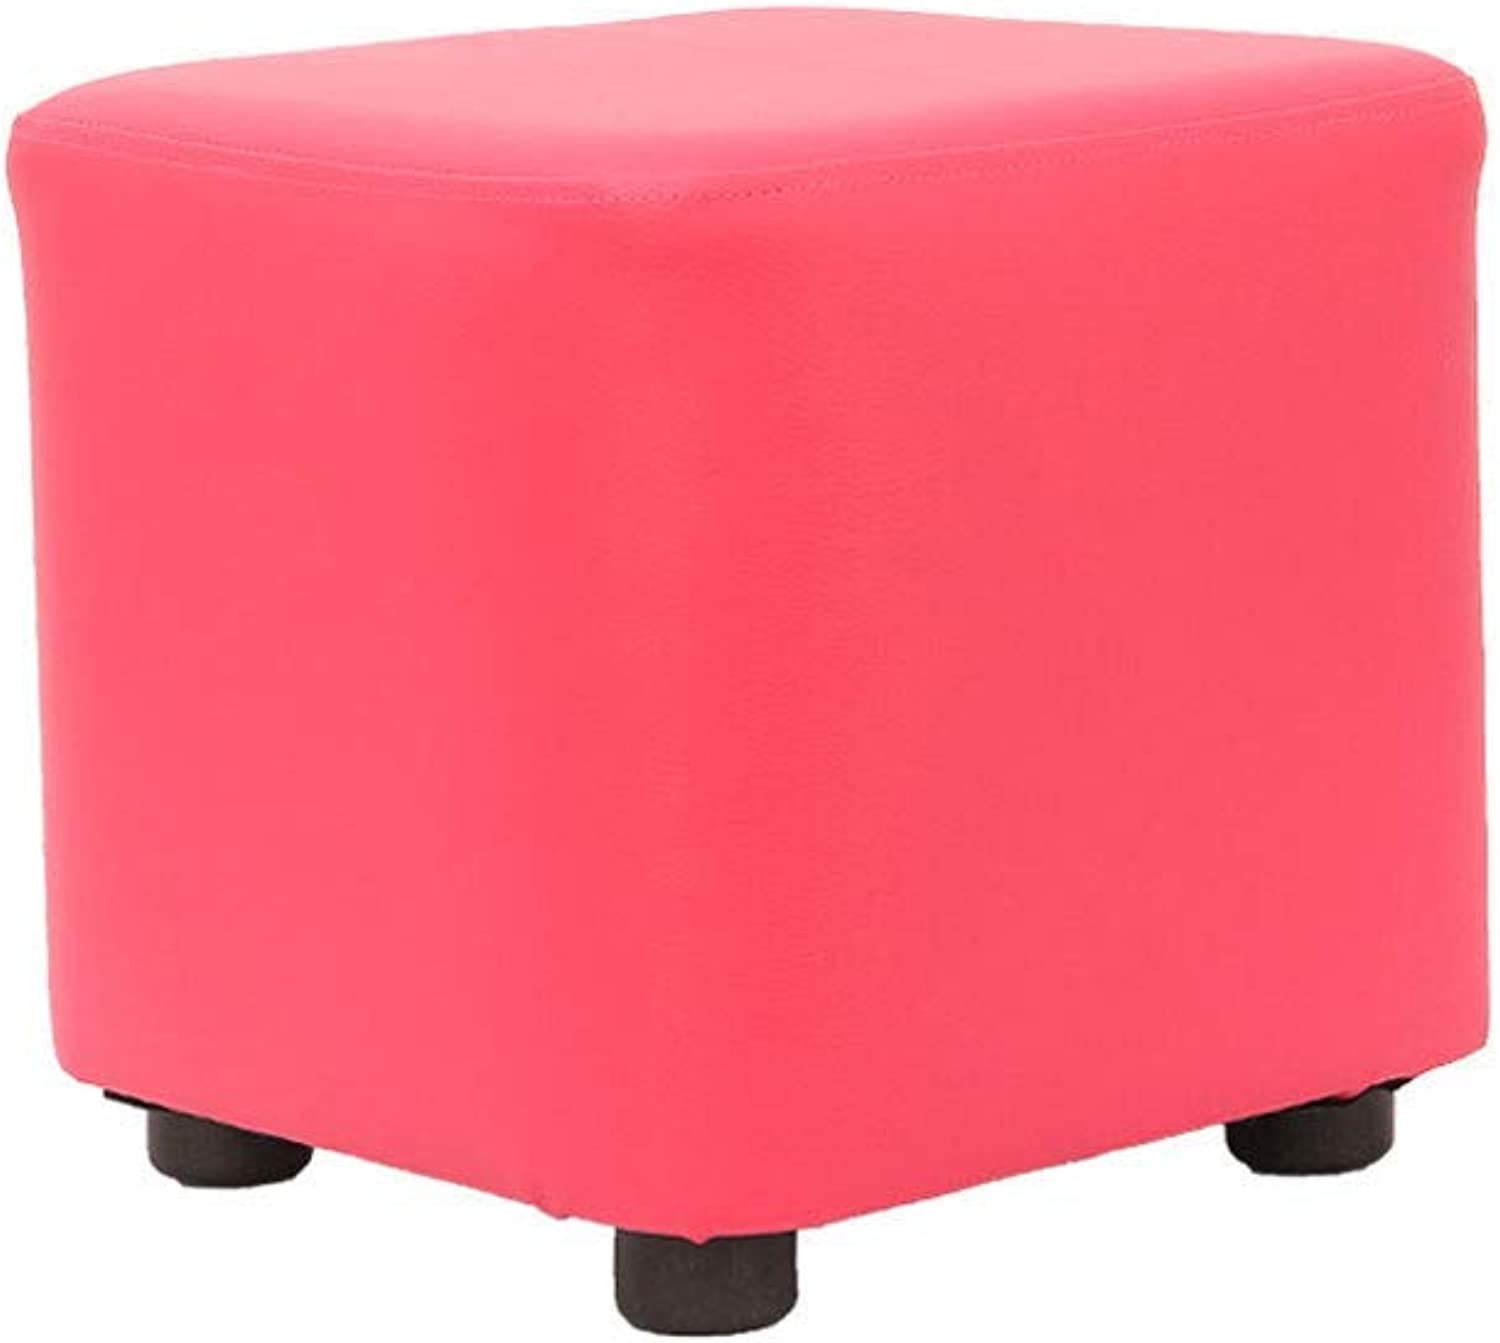 GJD Home Footstool, Creative Leather Fashion Sofa Bench, shoes Bench Leather, Multi-color (color   pink)